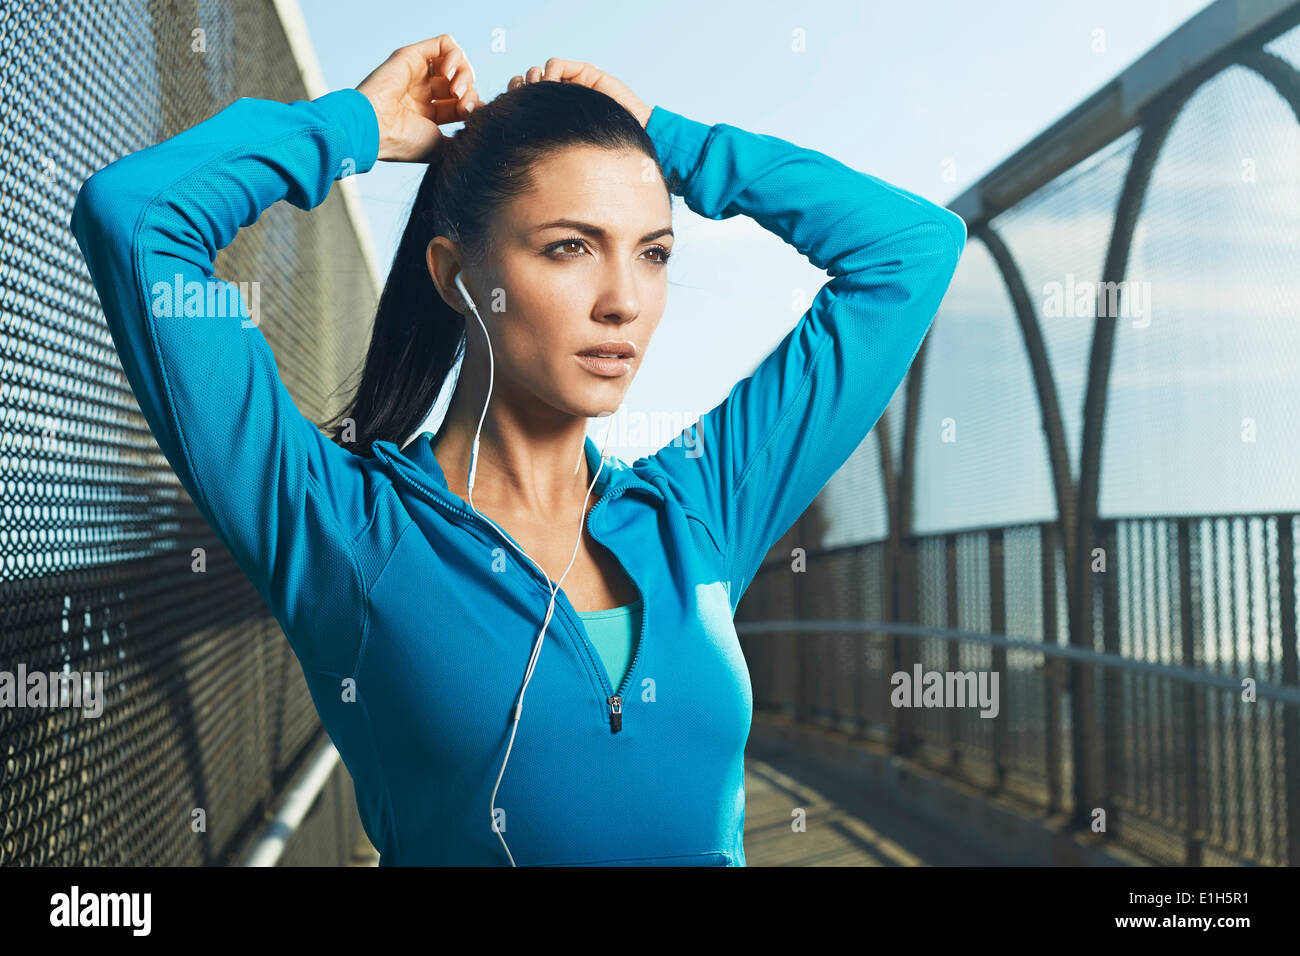 Woman wearing sports clothes preparing to run - Stock Image